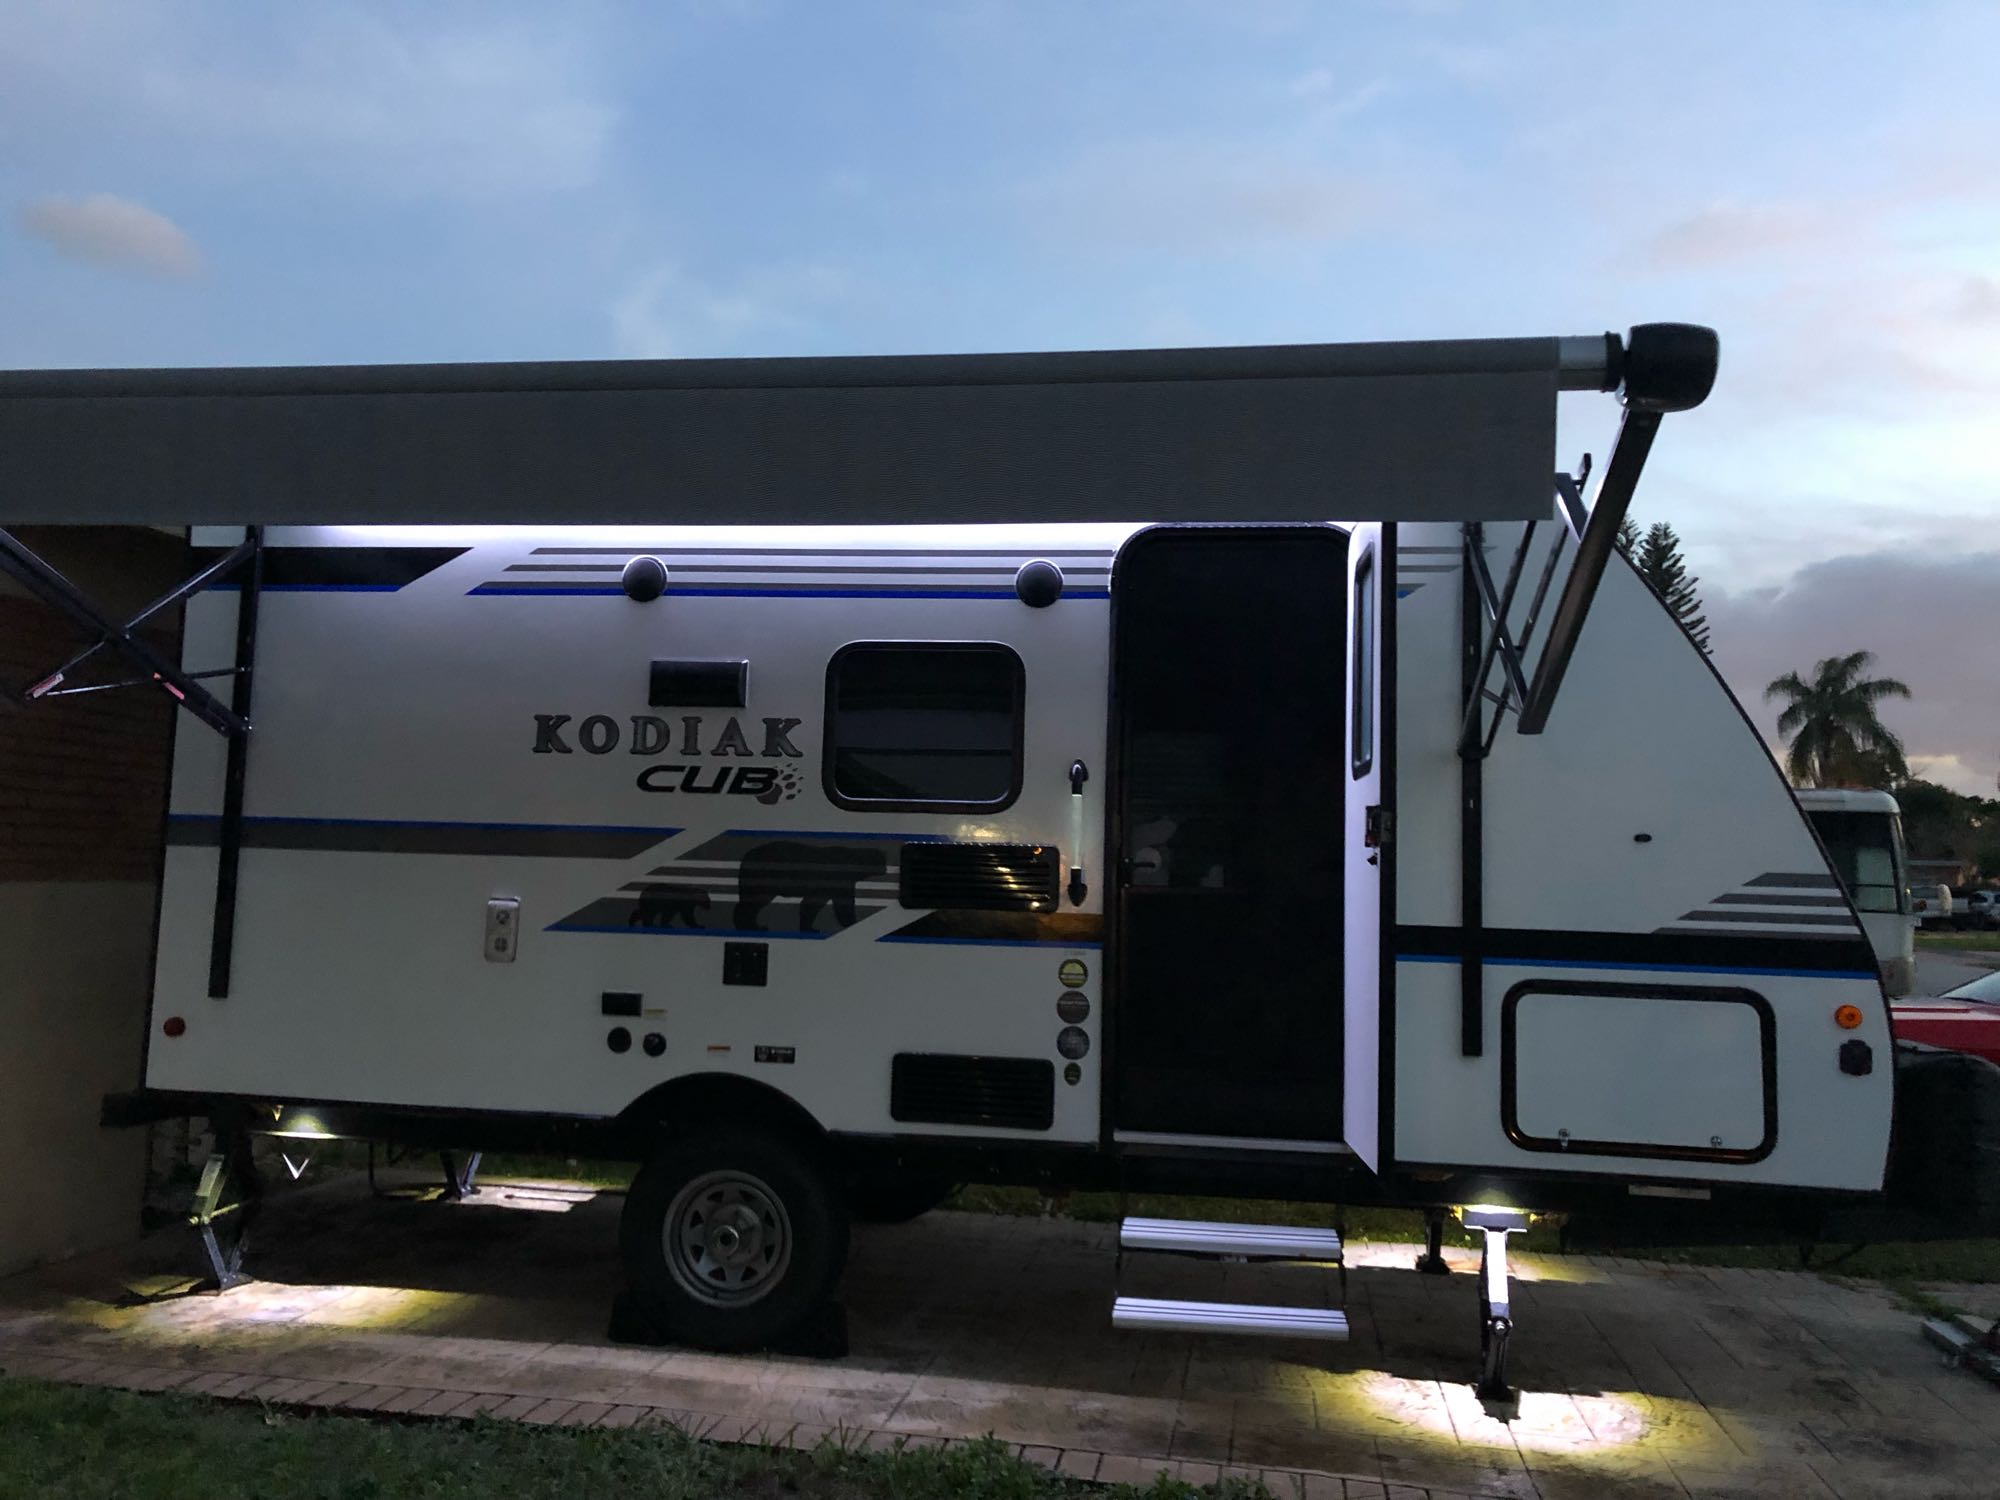 Great awning for Sun coverage during the day and night mist. . Dutchmen Kodiak 2018